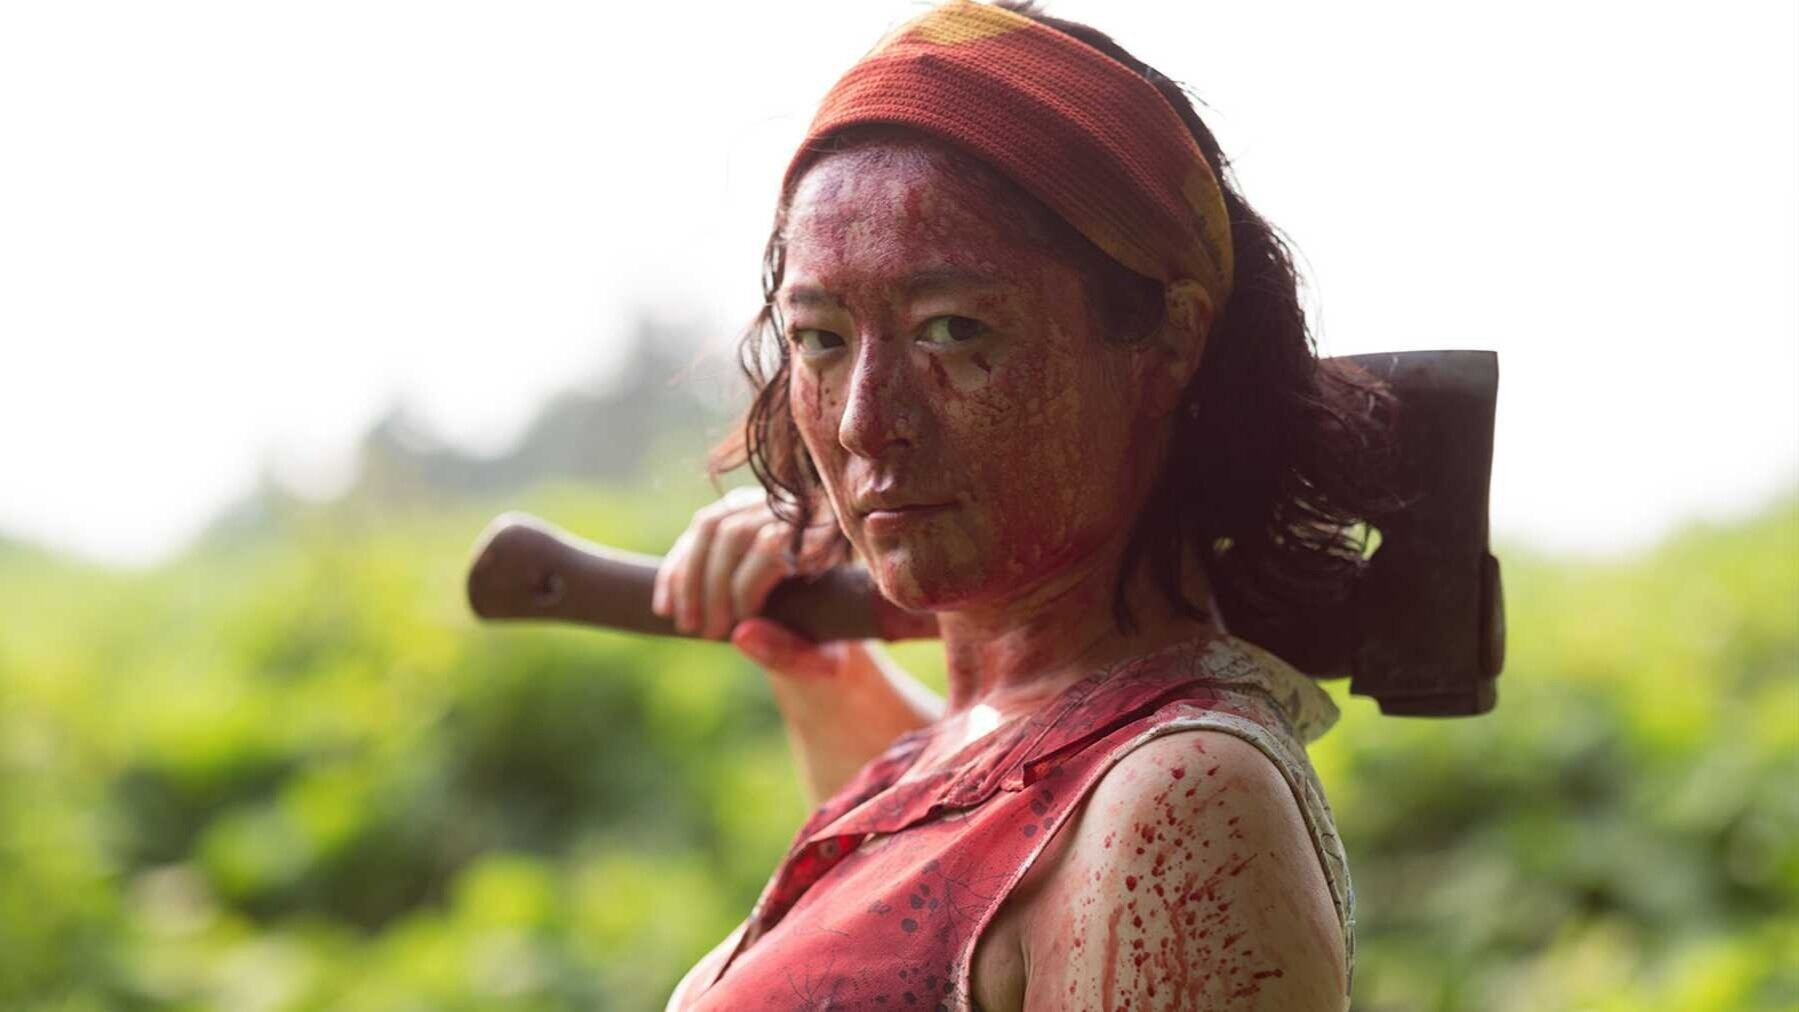 One Cut of the Dead  (2019) is now streaming on Shudder.